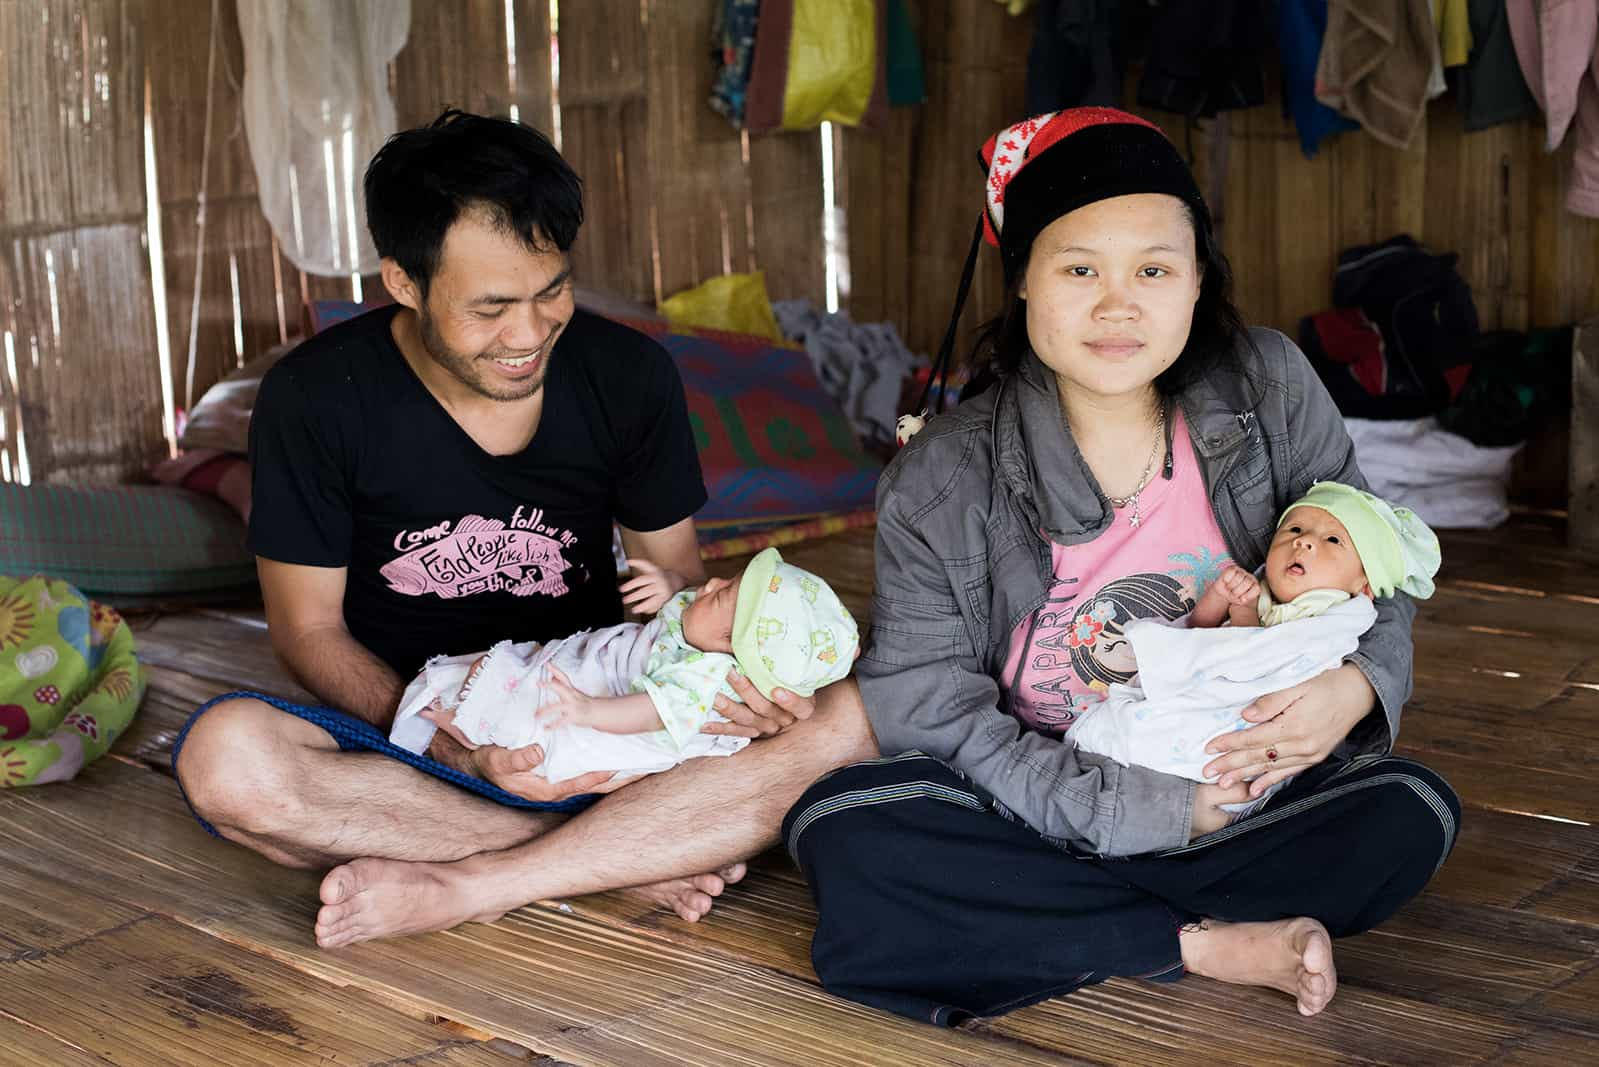 NoeDeMoo, Papala, and their twin baby girls, Phakaporn and Phakamon, sitting on the floor in their house. Papala is looking down at one of the twins smiling, and NoeDeMoo is looking at the camera.